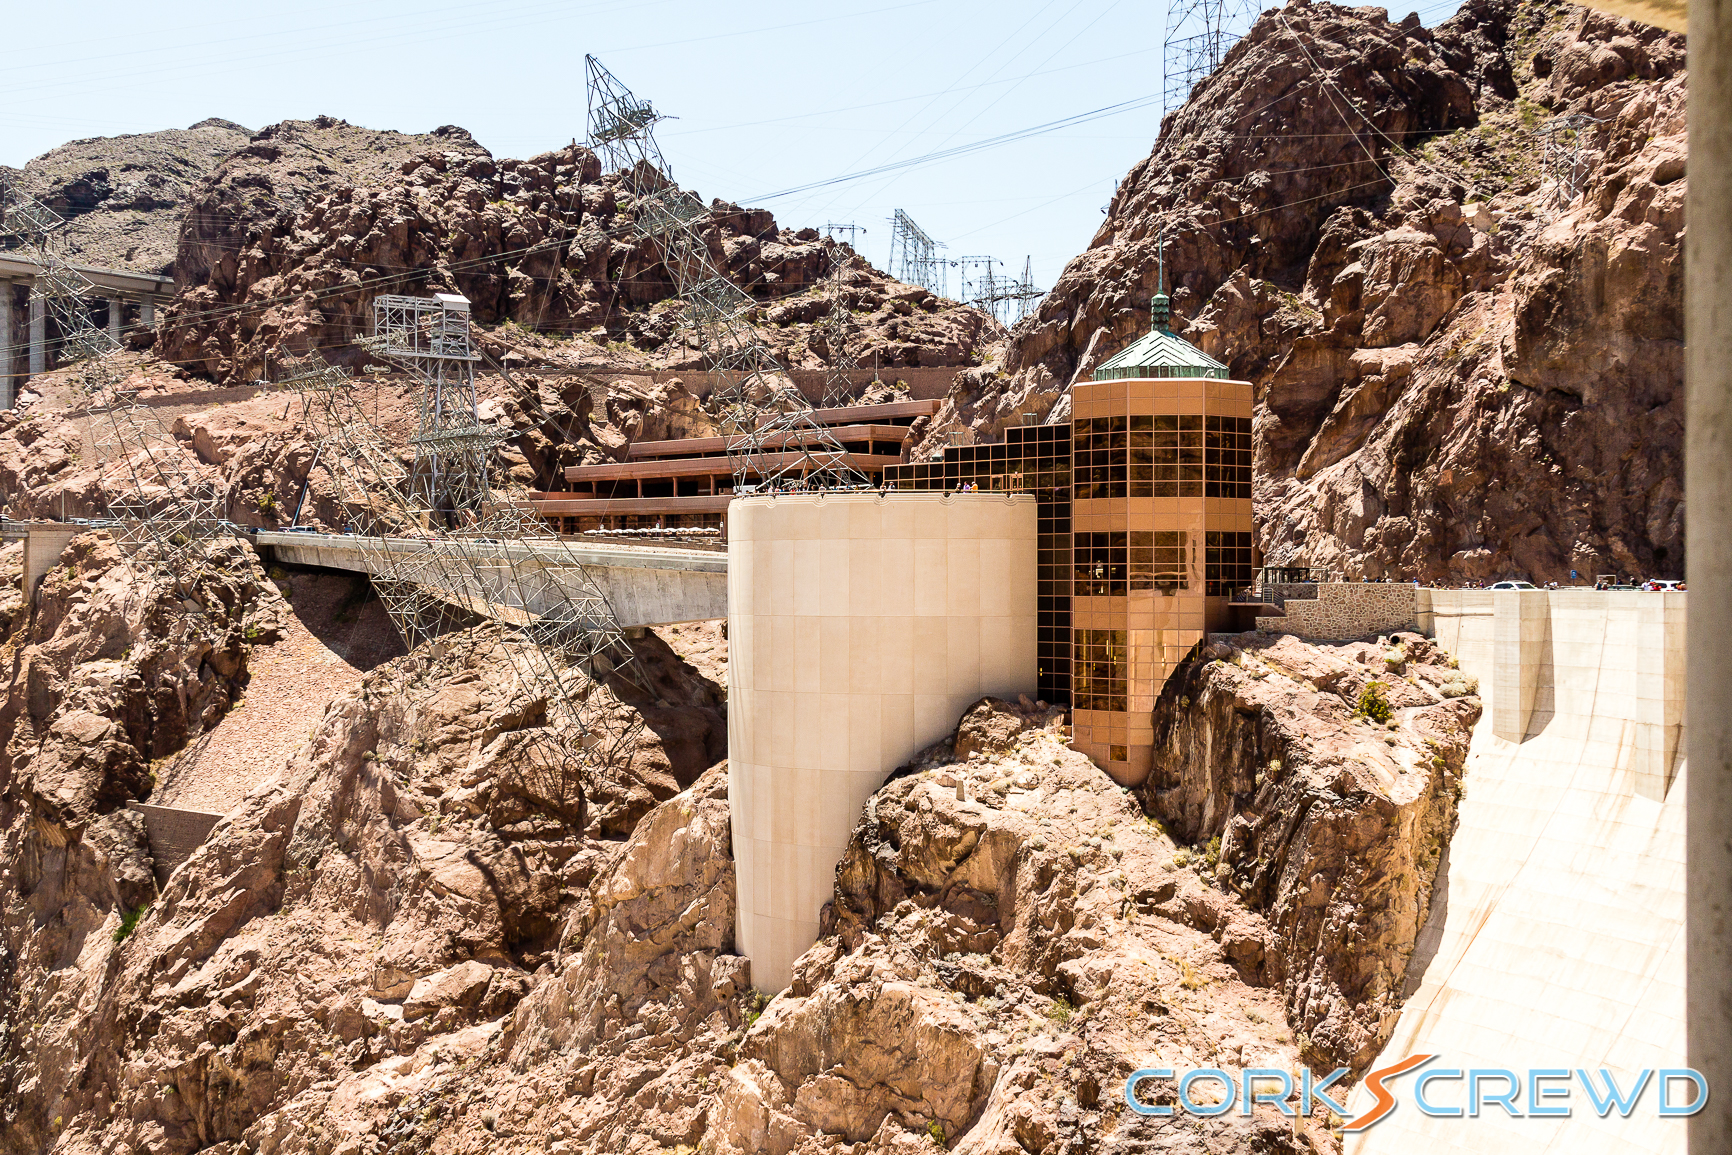 Another view of the visitor's center from the Hoover Dam.